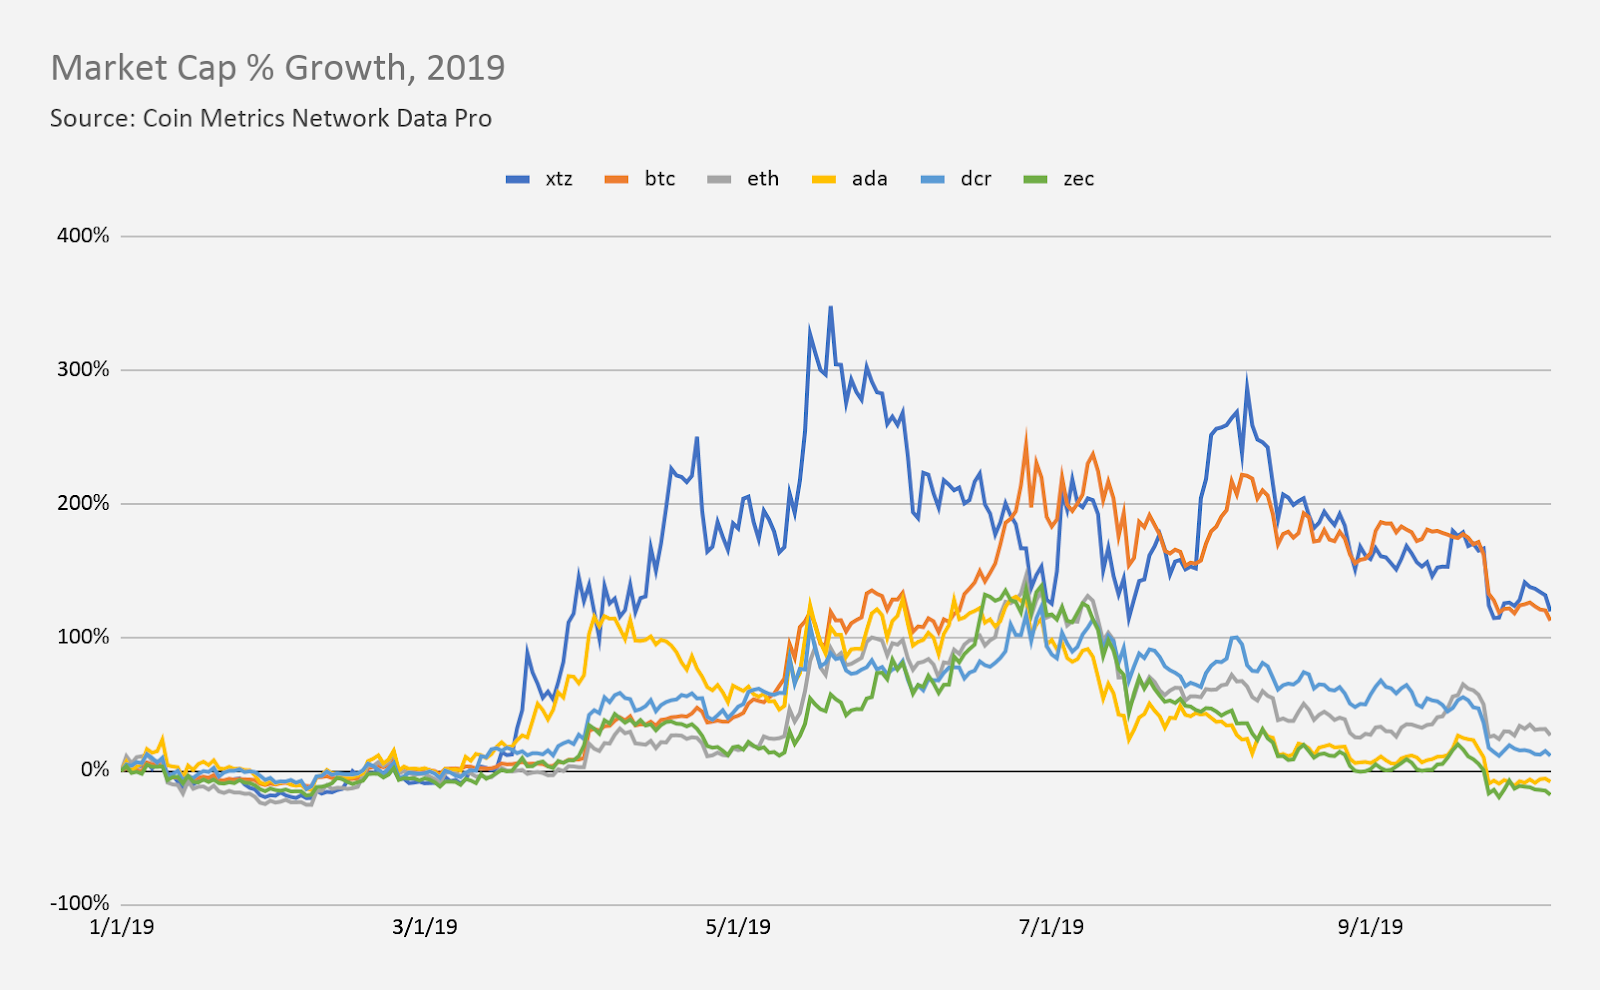 which cryptocurrency market caps have the most potential for growth